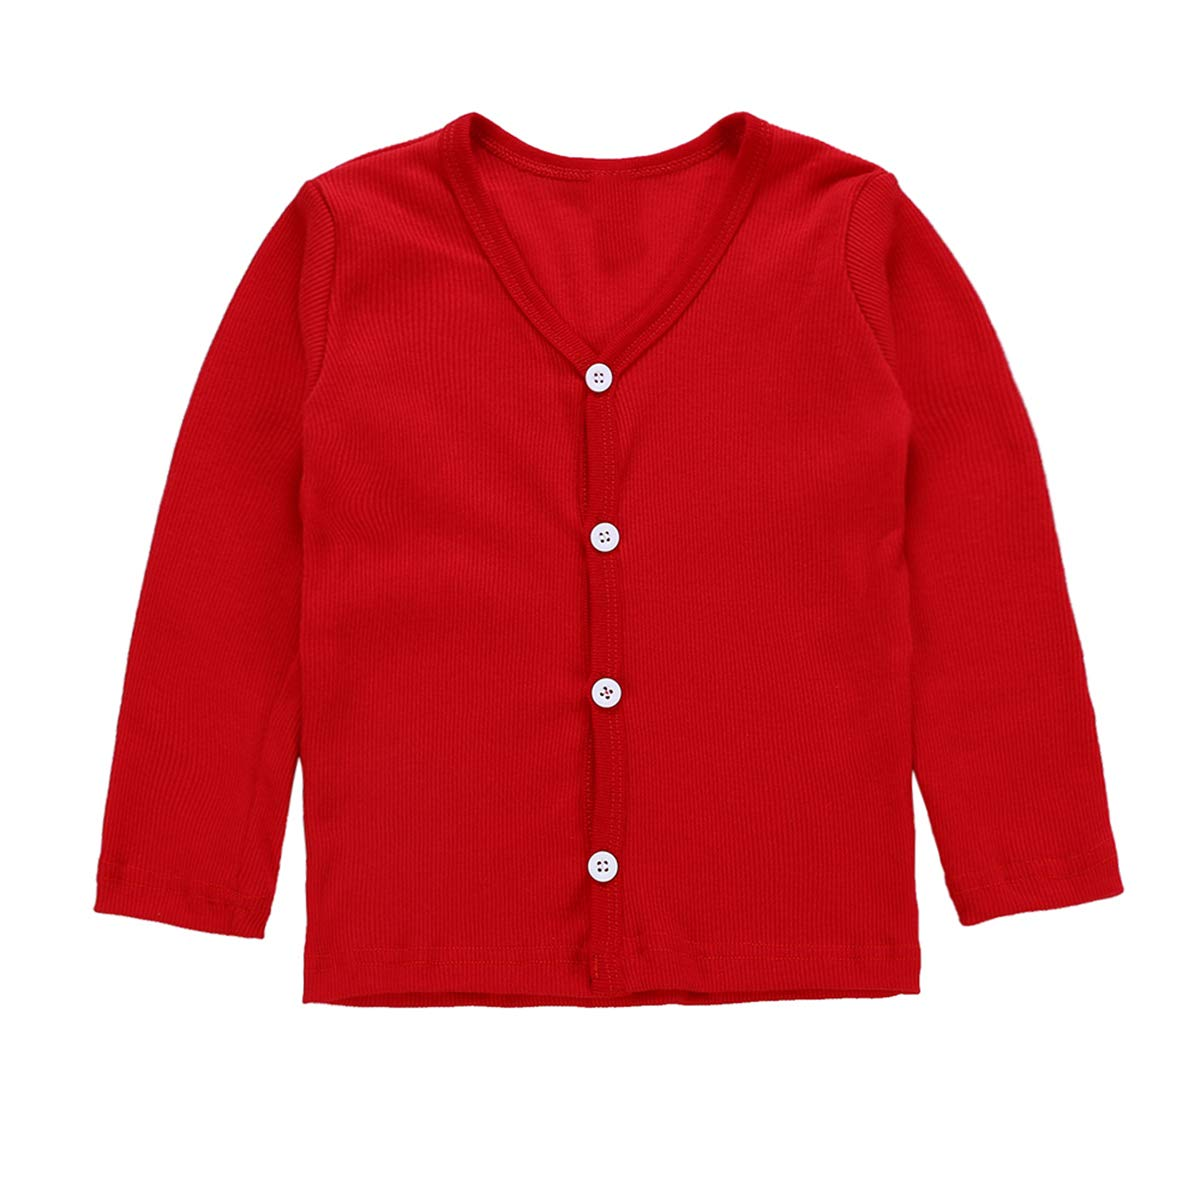 puseky Baby Kids Girl Long Sleeve Solid Knit Sweater Button Down Cardigan Coat Tops